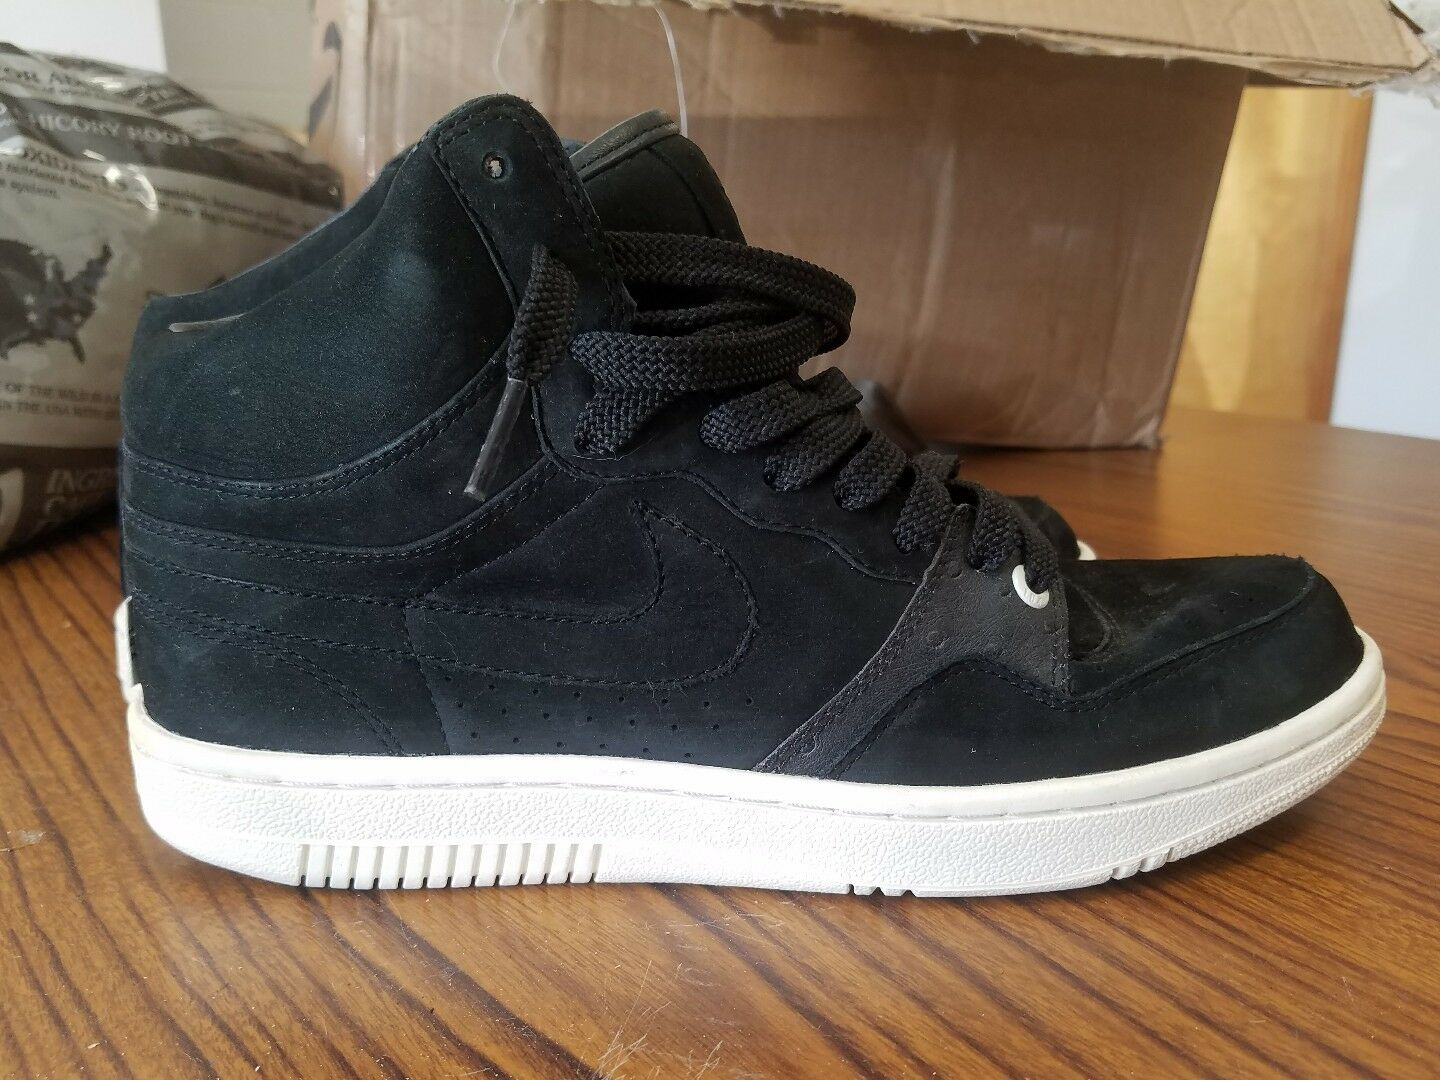 Nike Court Force High Lux Comfortable Comfortable and good-looking